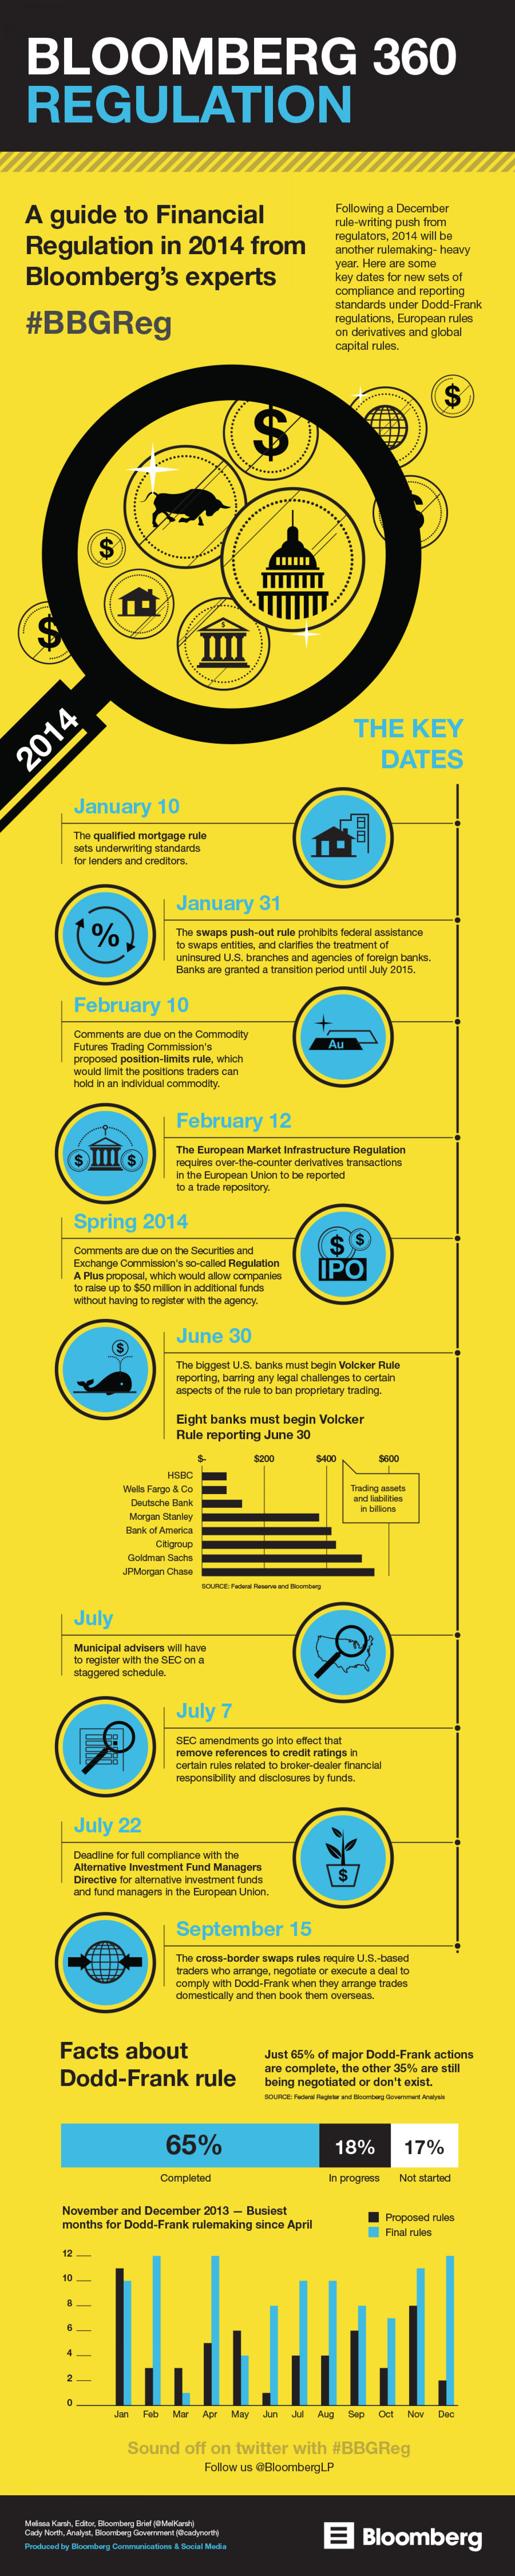 Bloomberg 360 Regulation Infographic